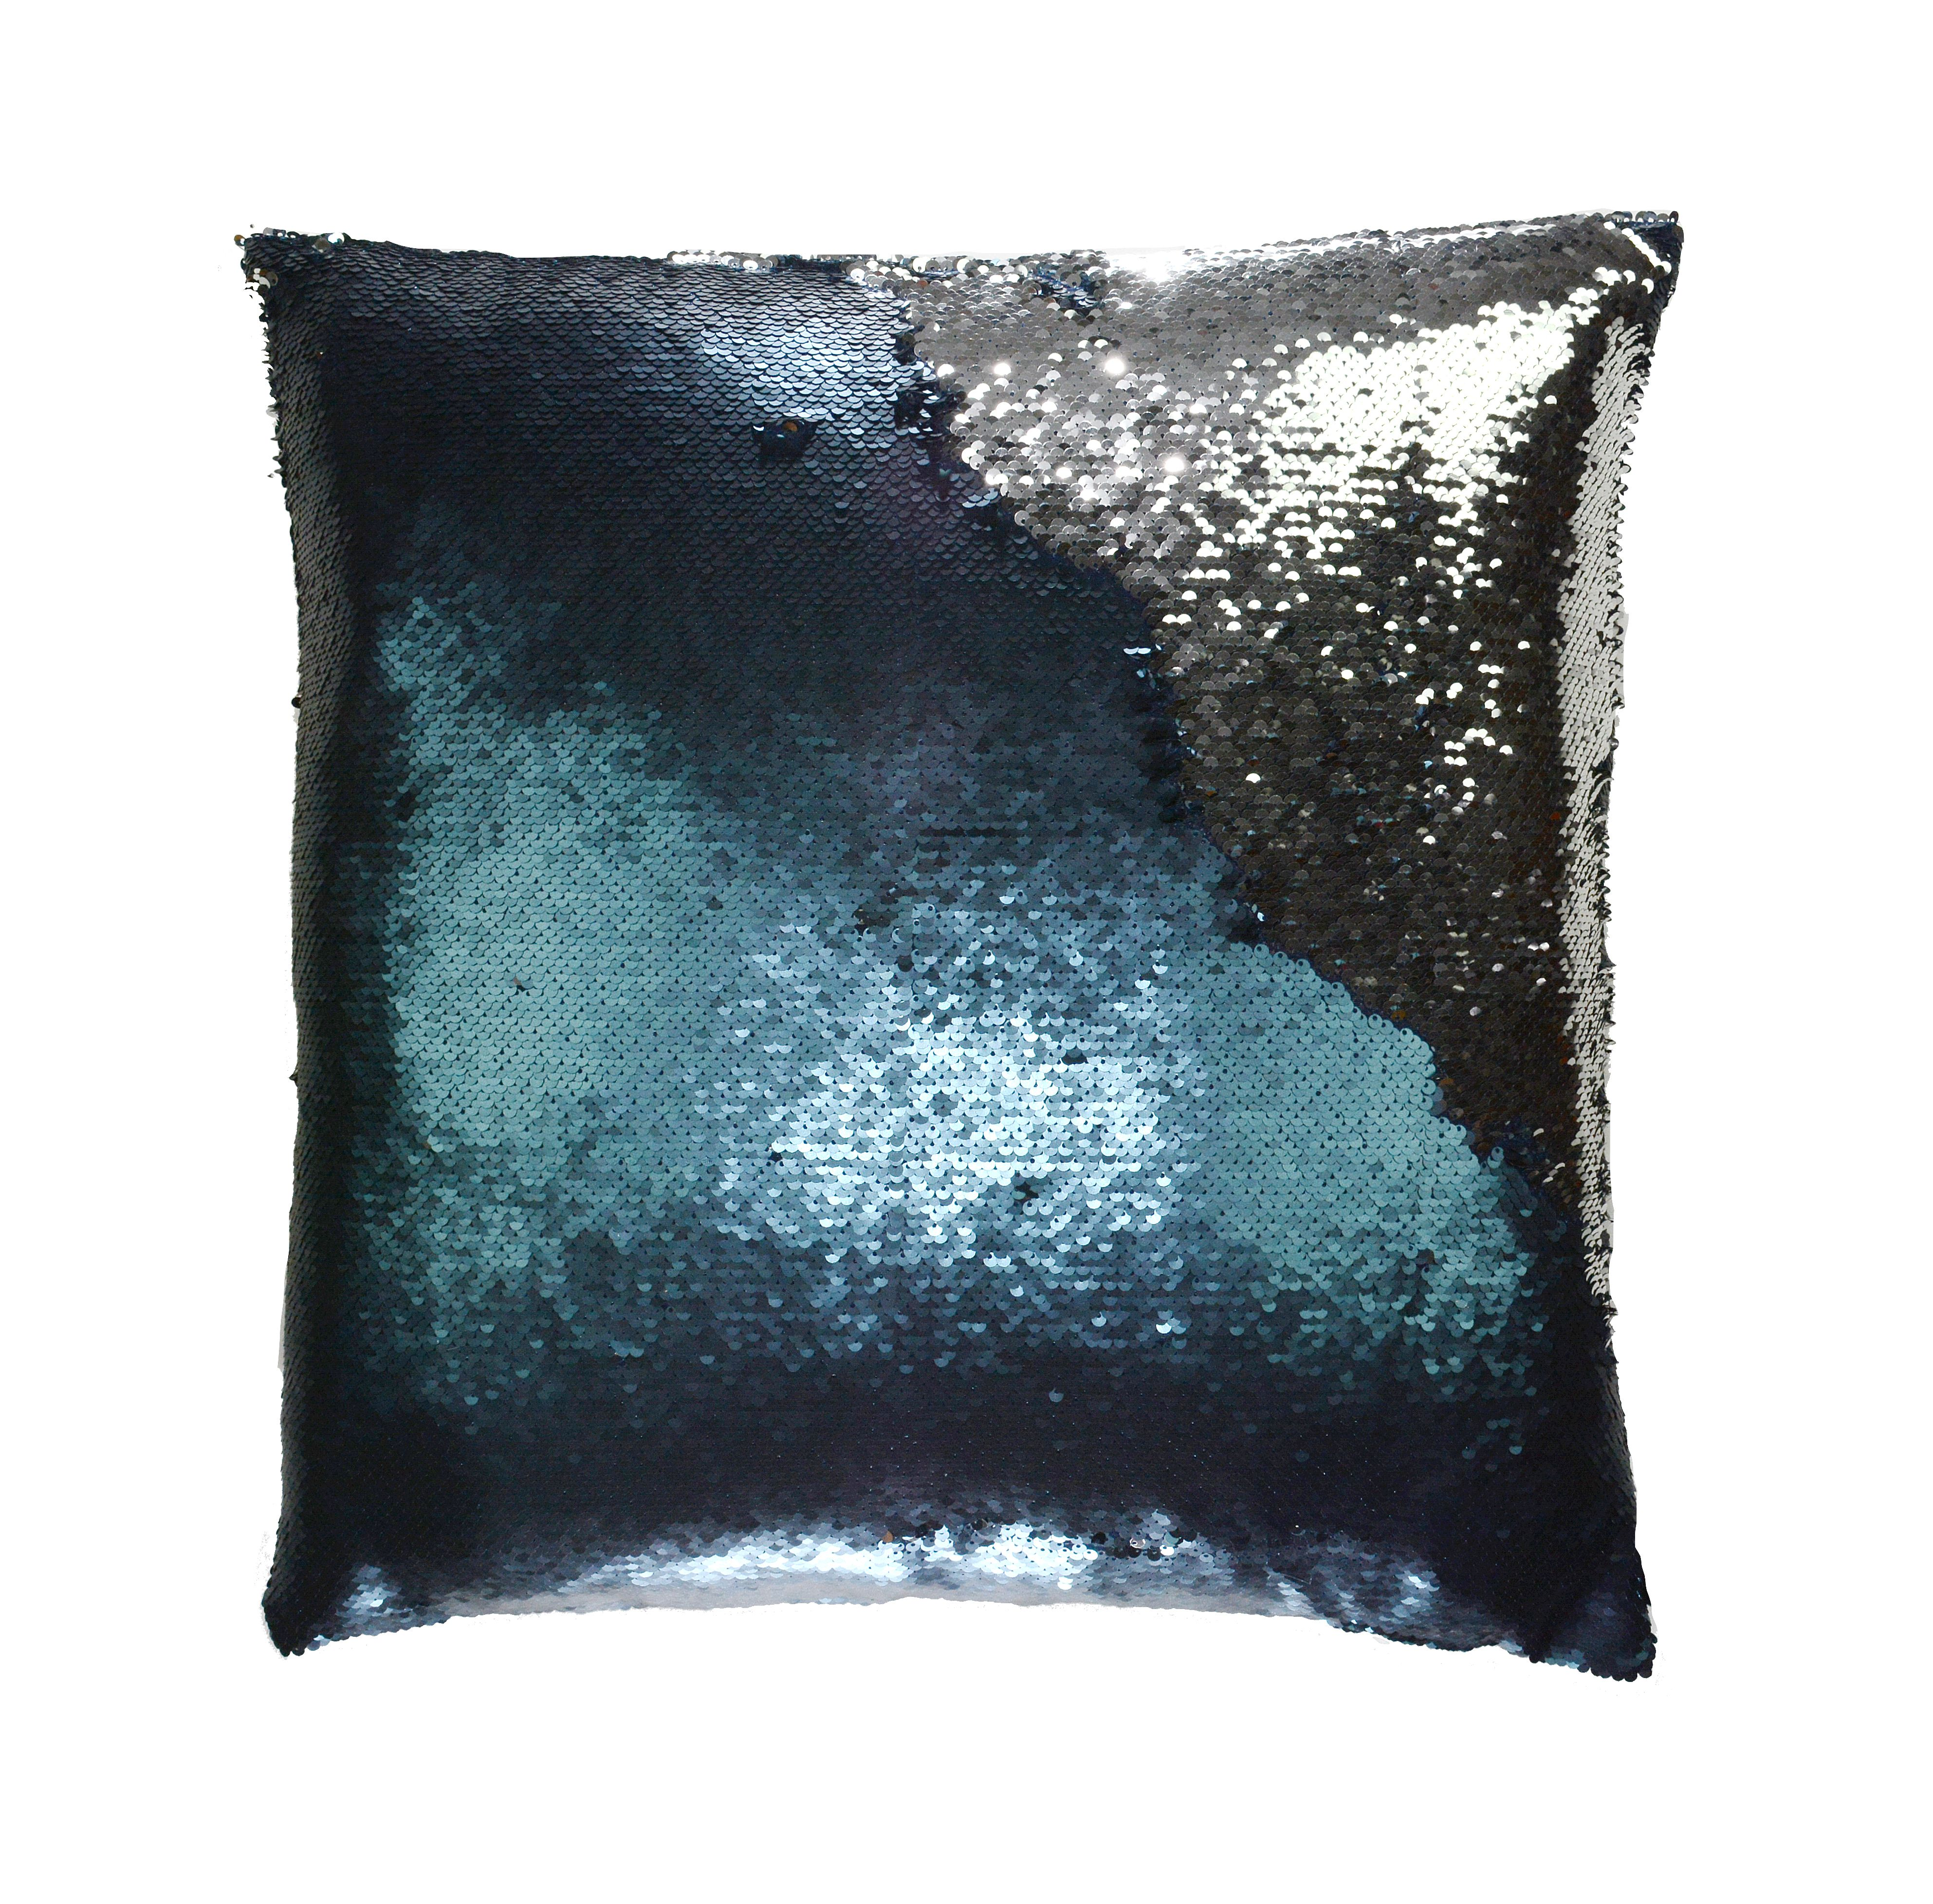 message pillows cushions shop gold with sequin nosey hidden mermaid pillow img cunt